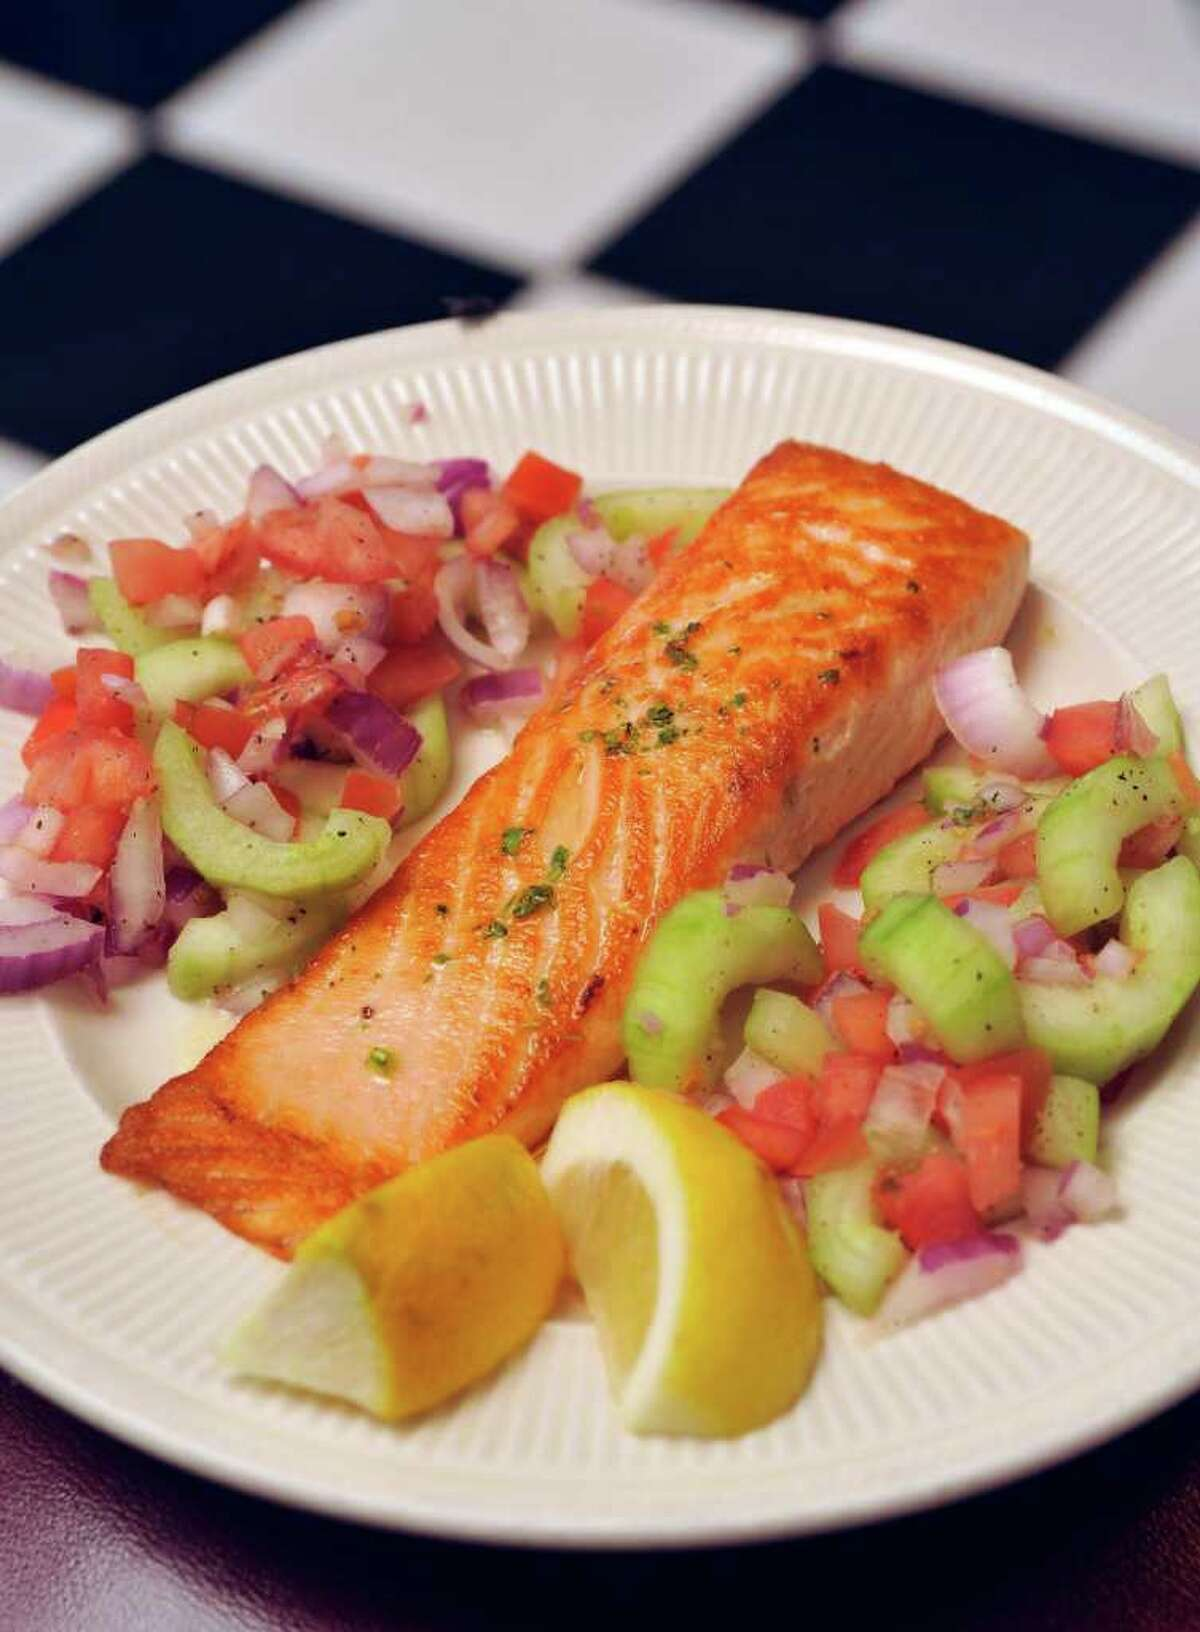 The grilled salmon, topped with lemon and butter, is a favorite of Checkers Diner owner Marlen Ramirez.